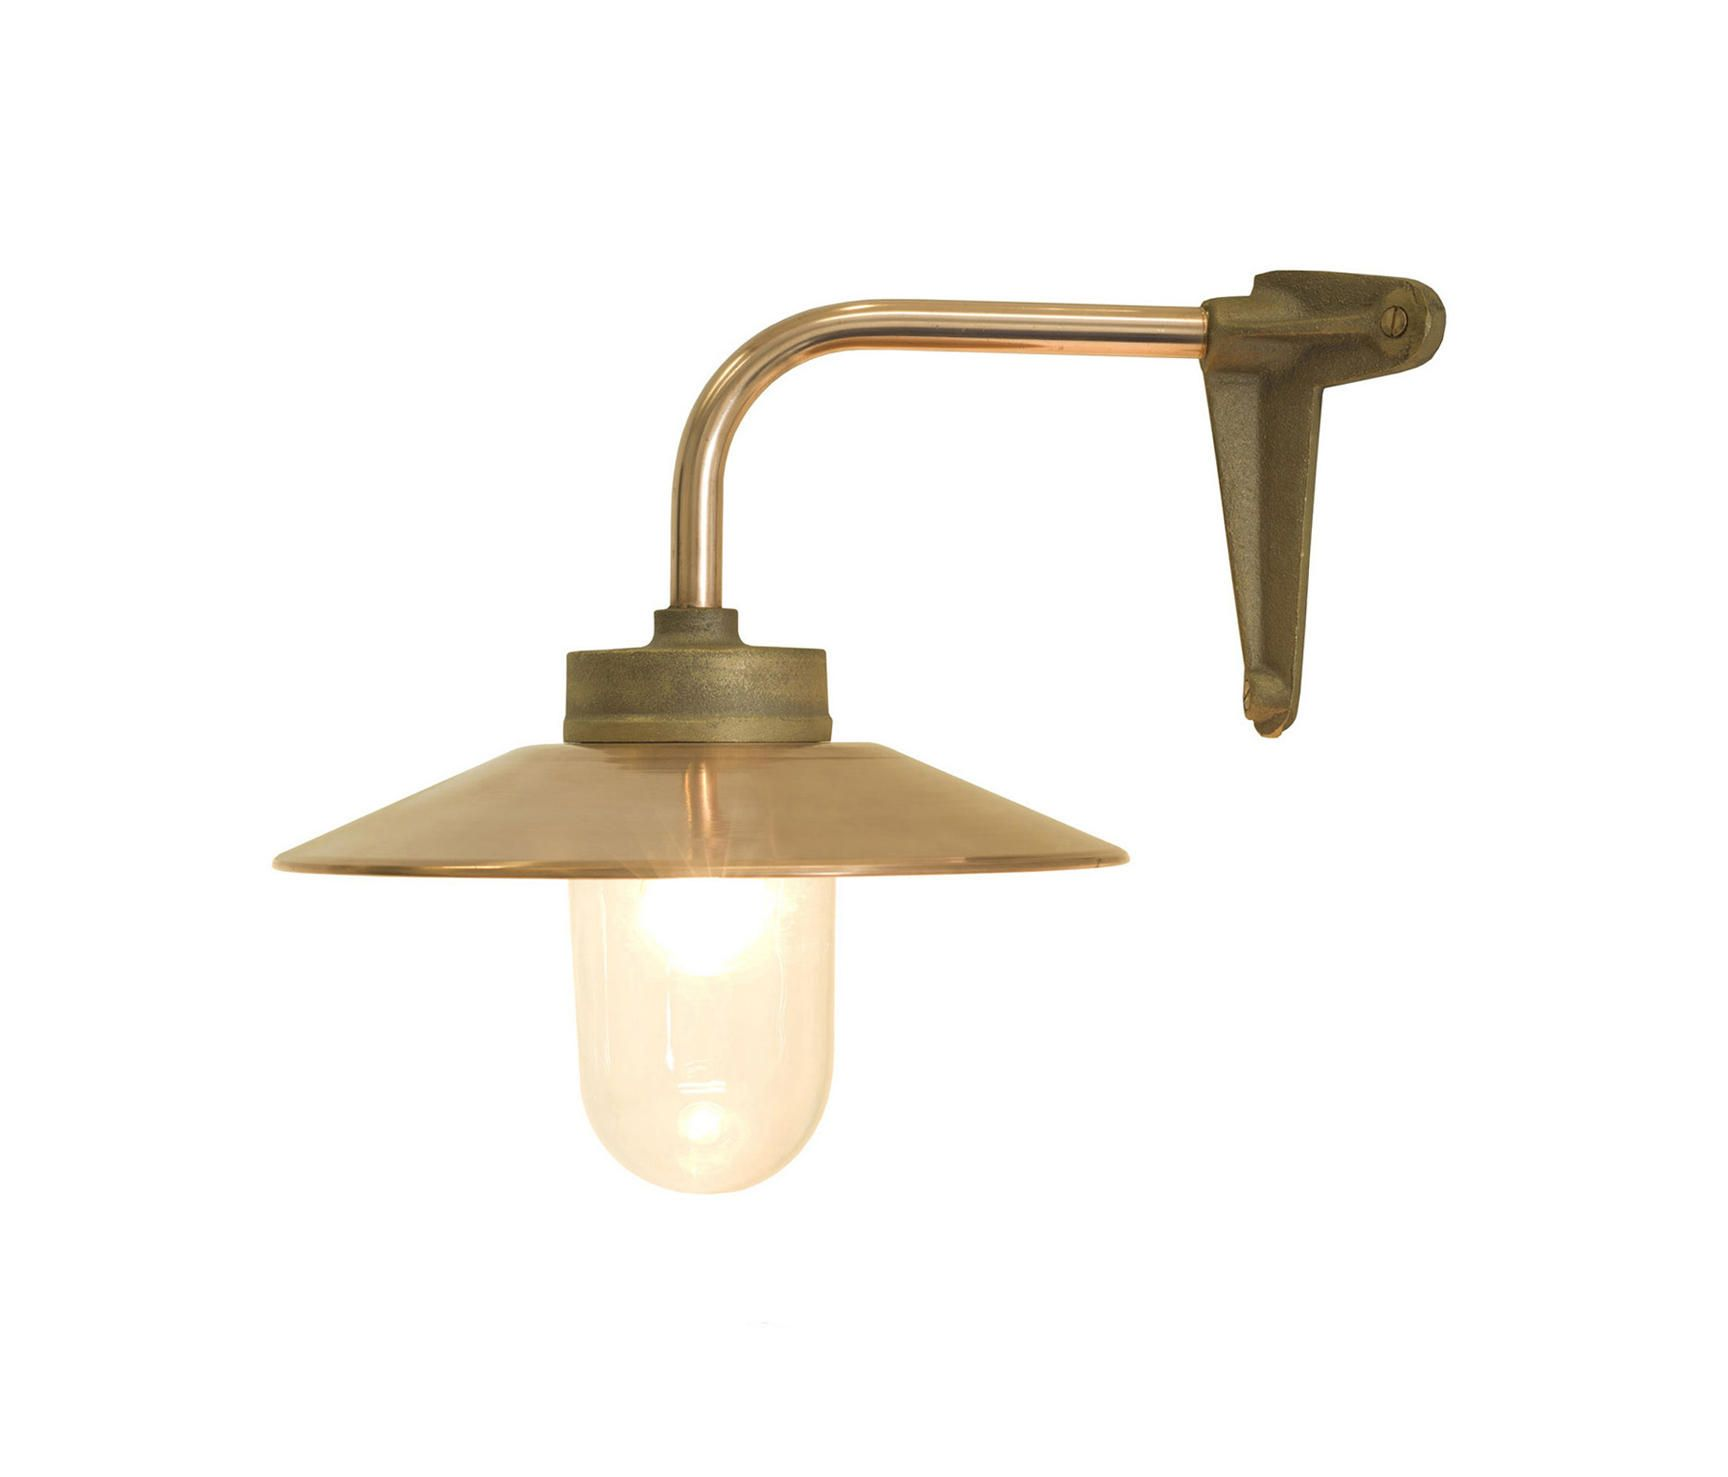 7680 Exterior Bracket Light Right Angle Corner Gunmetal Clear Glass By Davey Lighting Limited General Lig Bracket Lights Wall Lighting Design Wall Lights